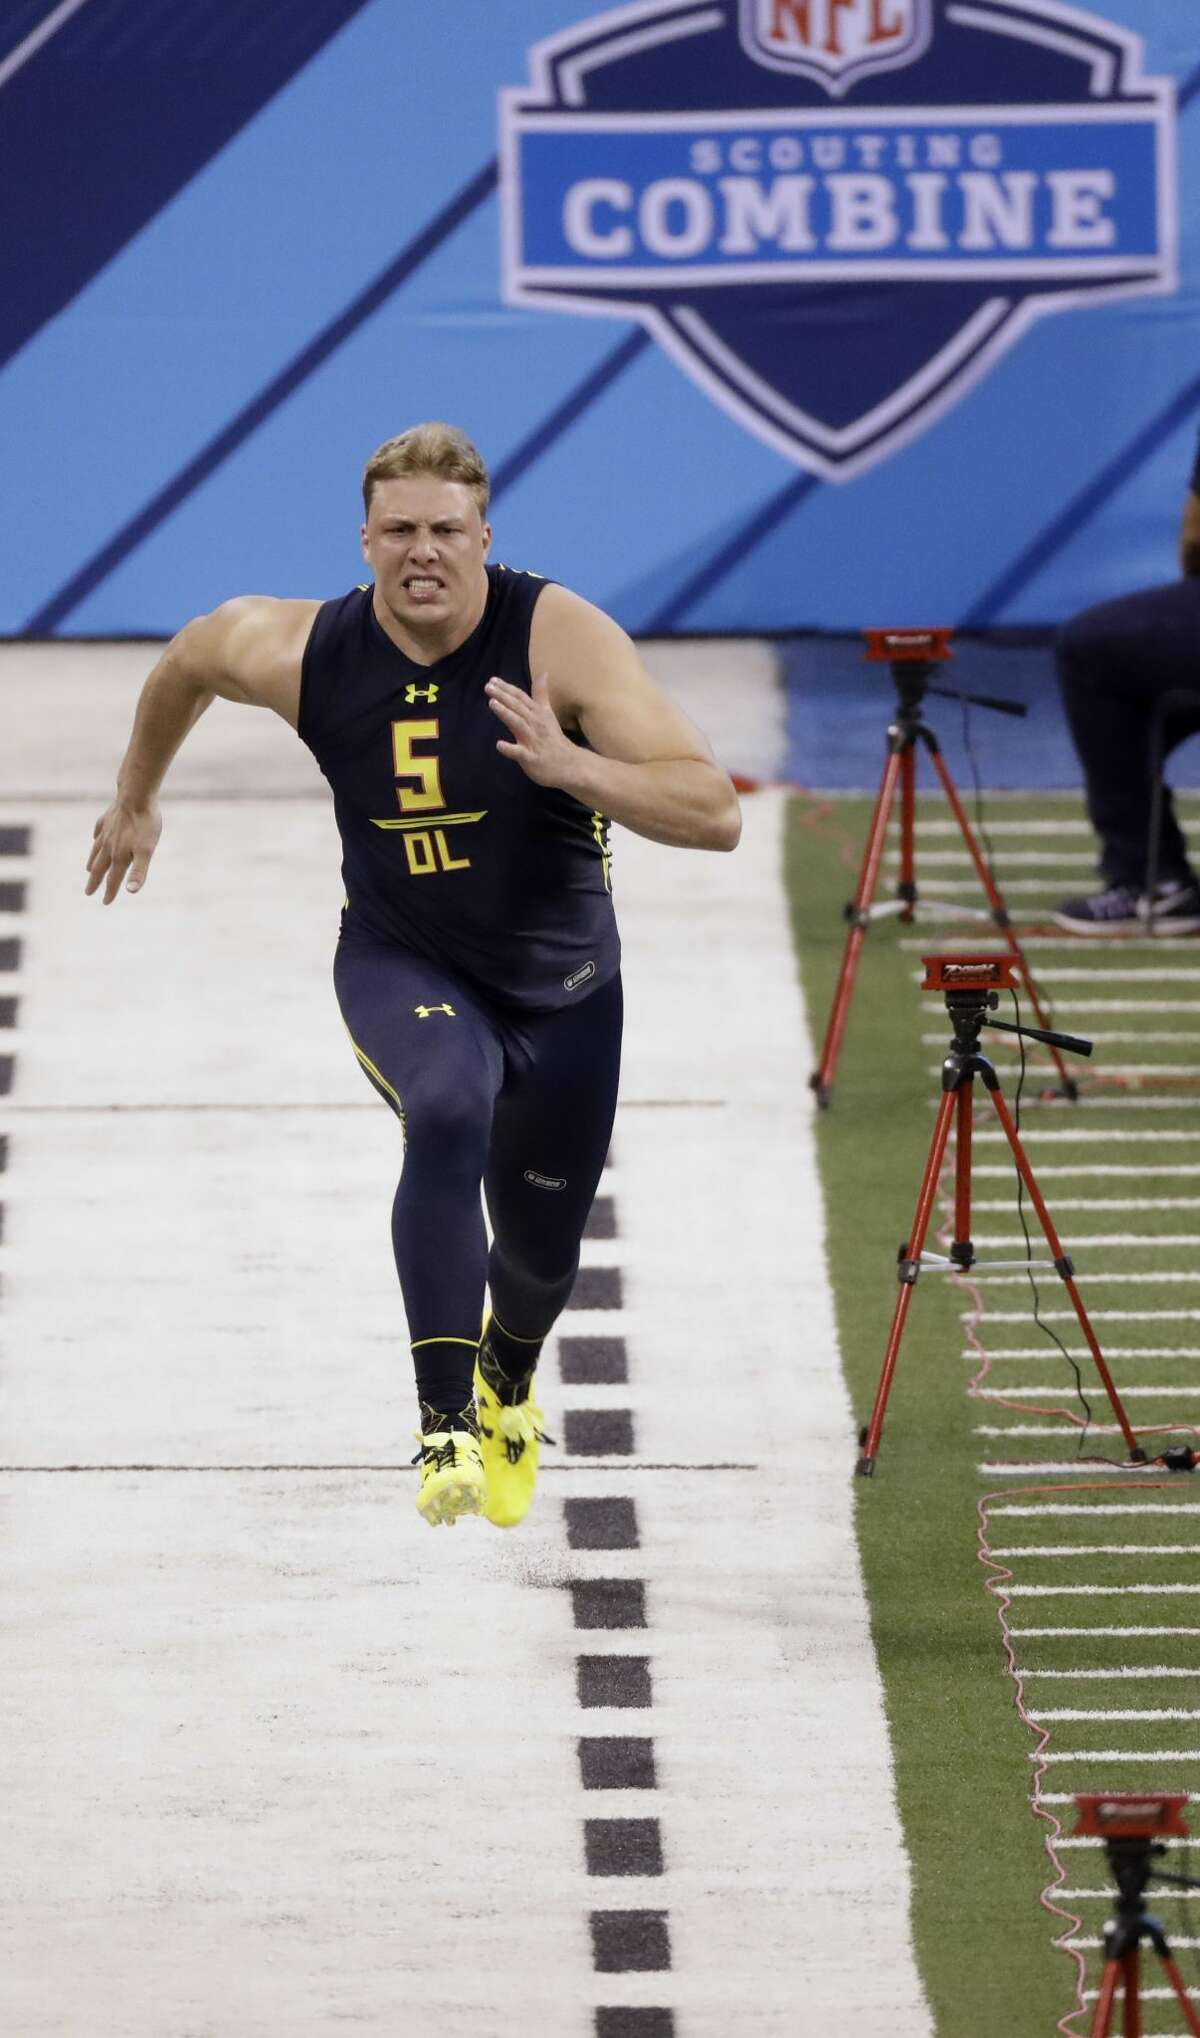 Utah offensive lineman Garett Bolles runs the 40-yard dash at the NFL football scouting combine Friday, March 3, 2017, in Indianapolis. (AP Photo/David J. Phillip)